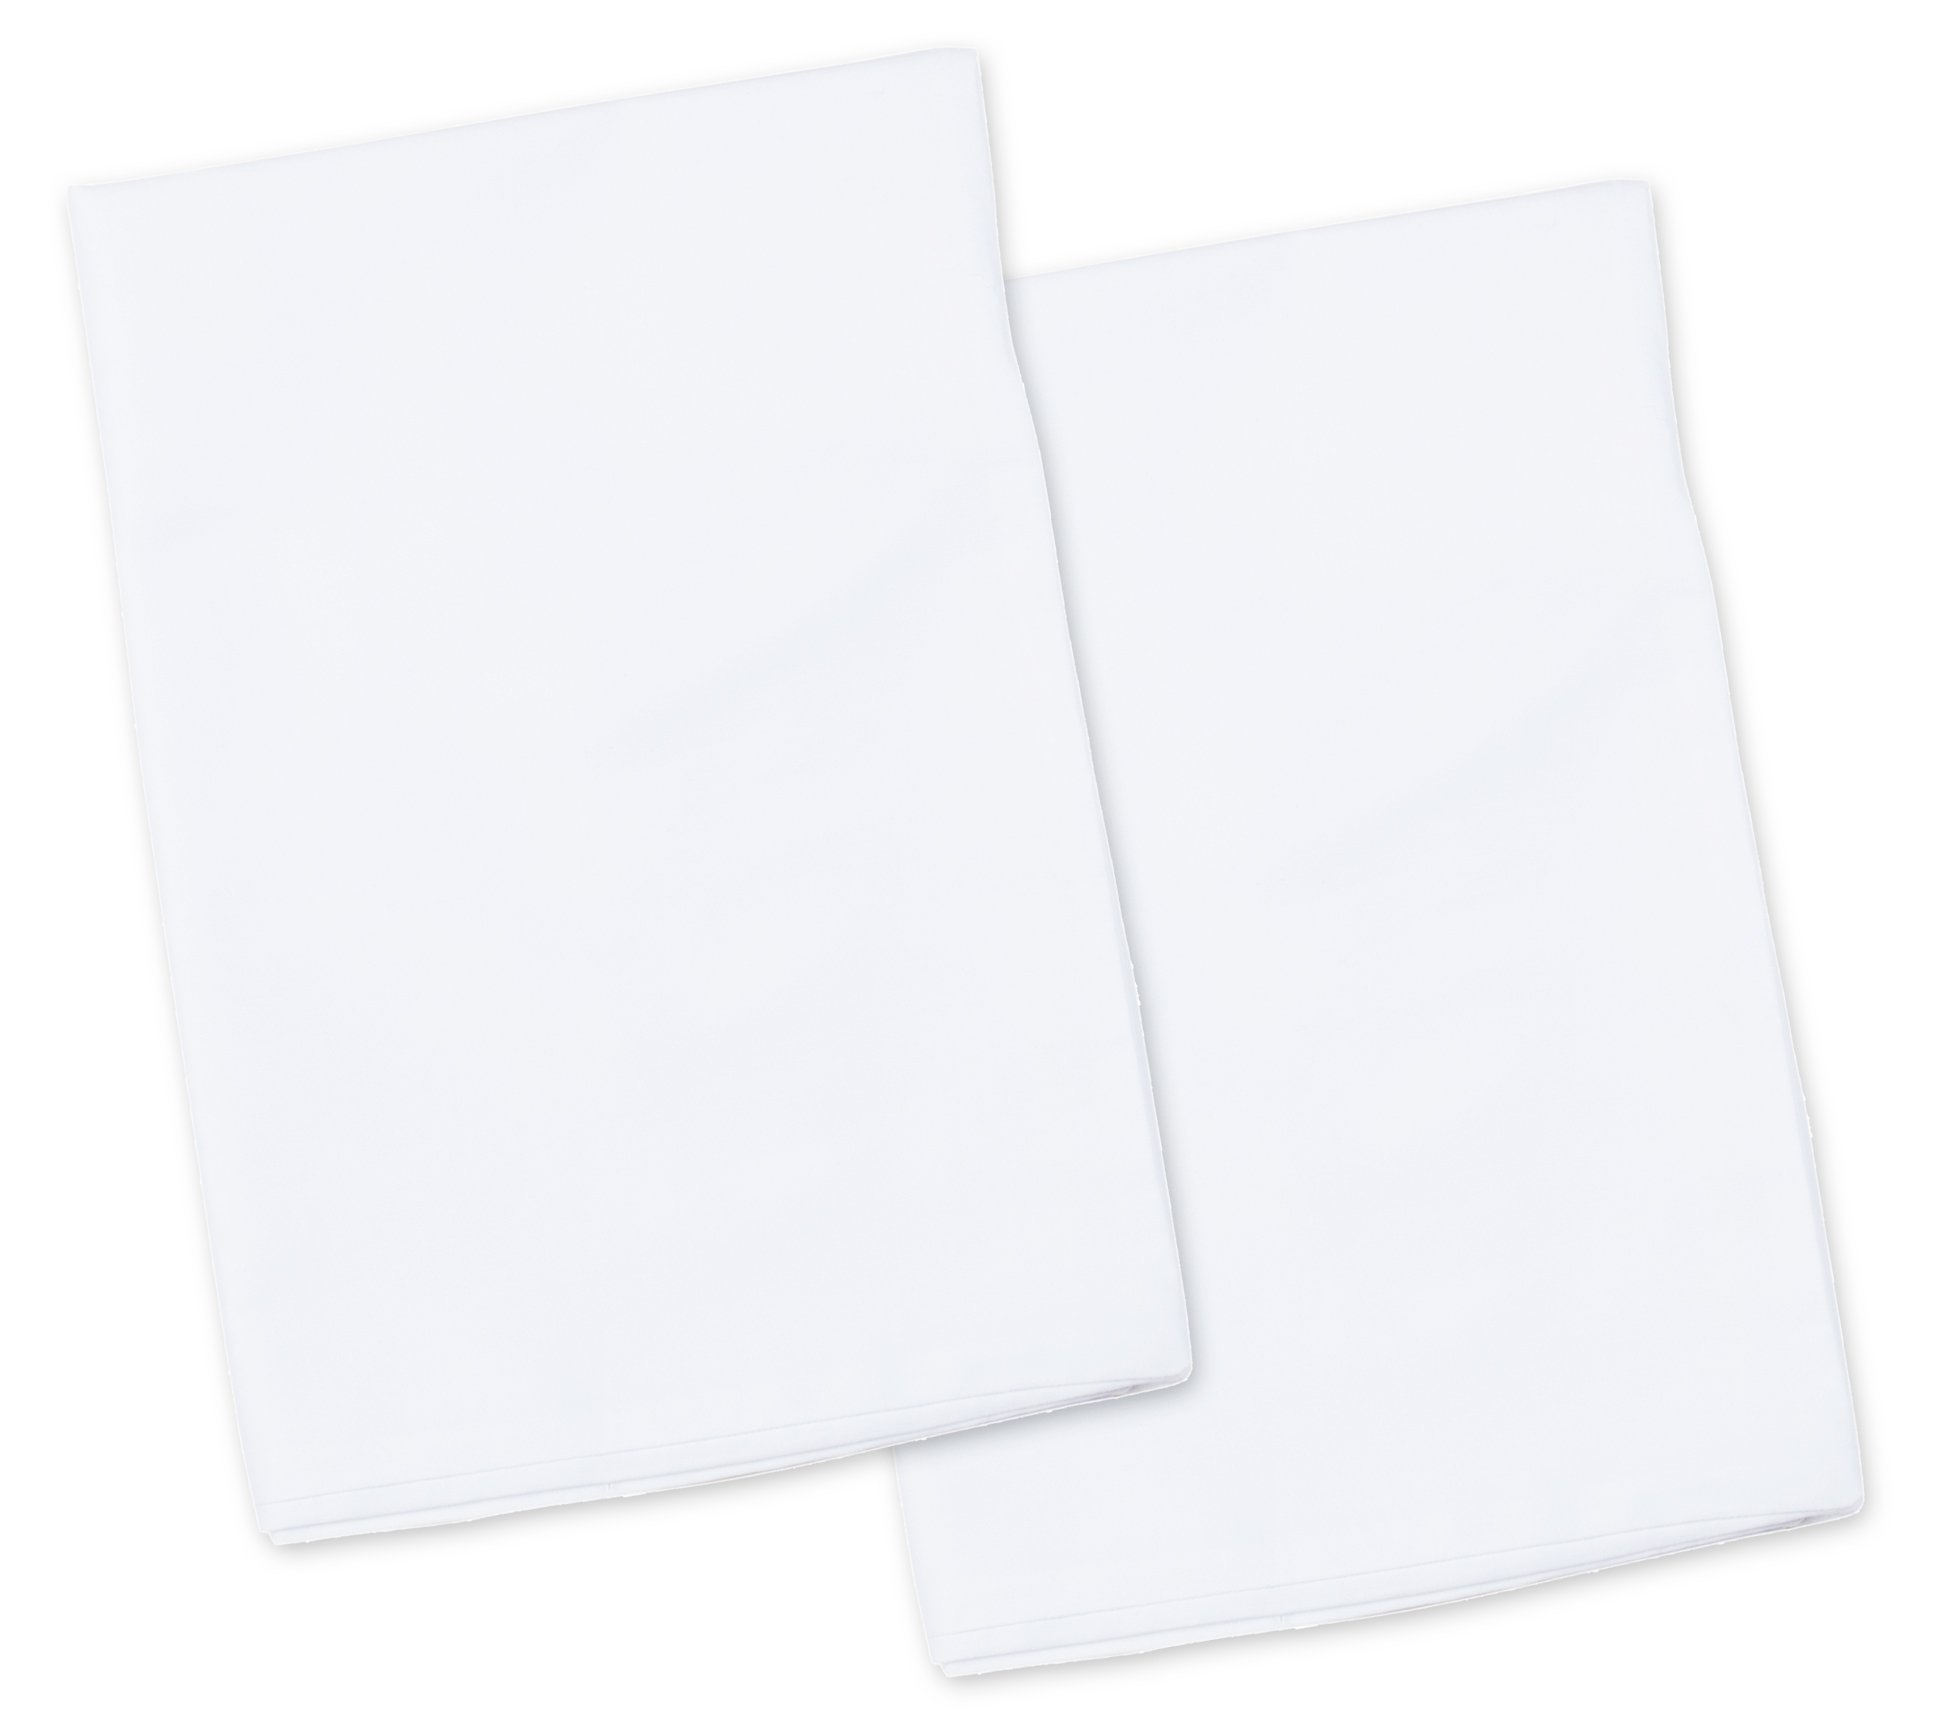 2 White Toddler Pillowcases - Envelope Style - For Pillows Sized 13x18 and 14x19 - 100% Cotton With Soft Sateen Weave - Machine Washable